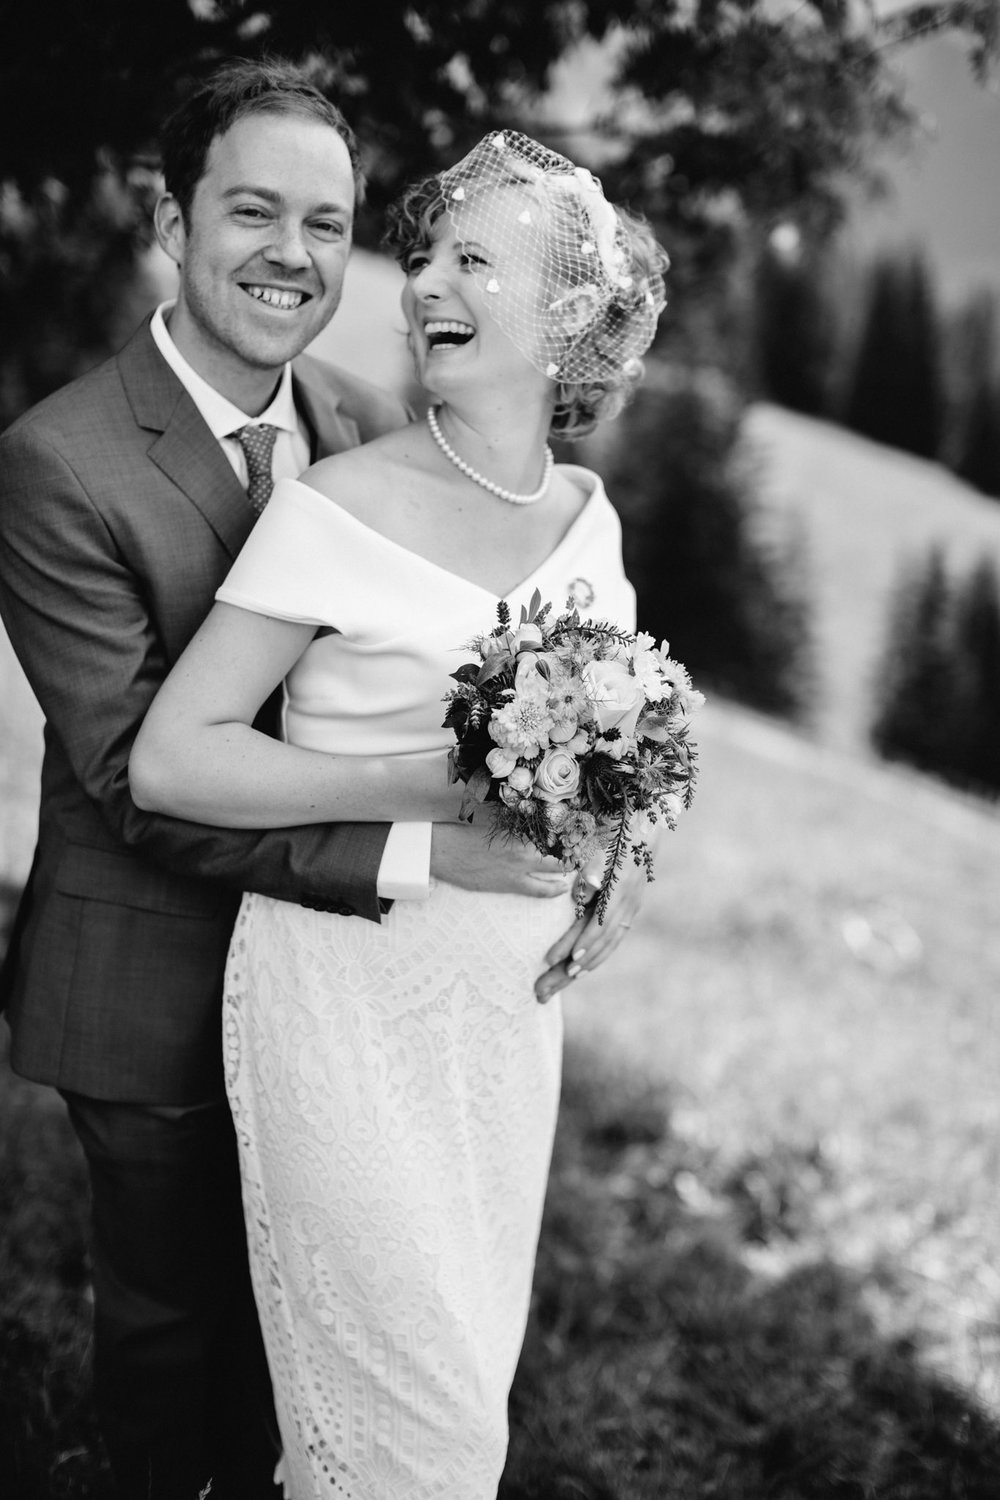 Lenl-Simmental-Buehlerhof-Pia-Anna-Christian-Wedding-Photography-EK-39.jpg